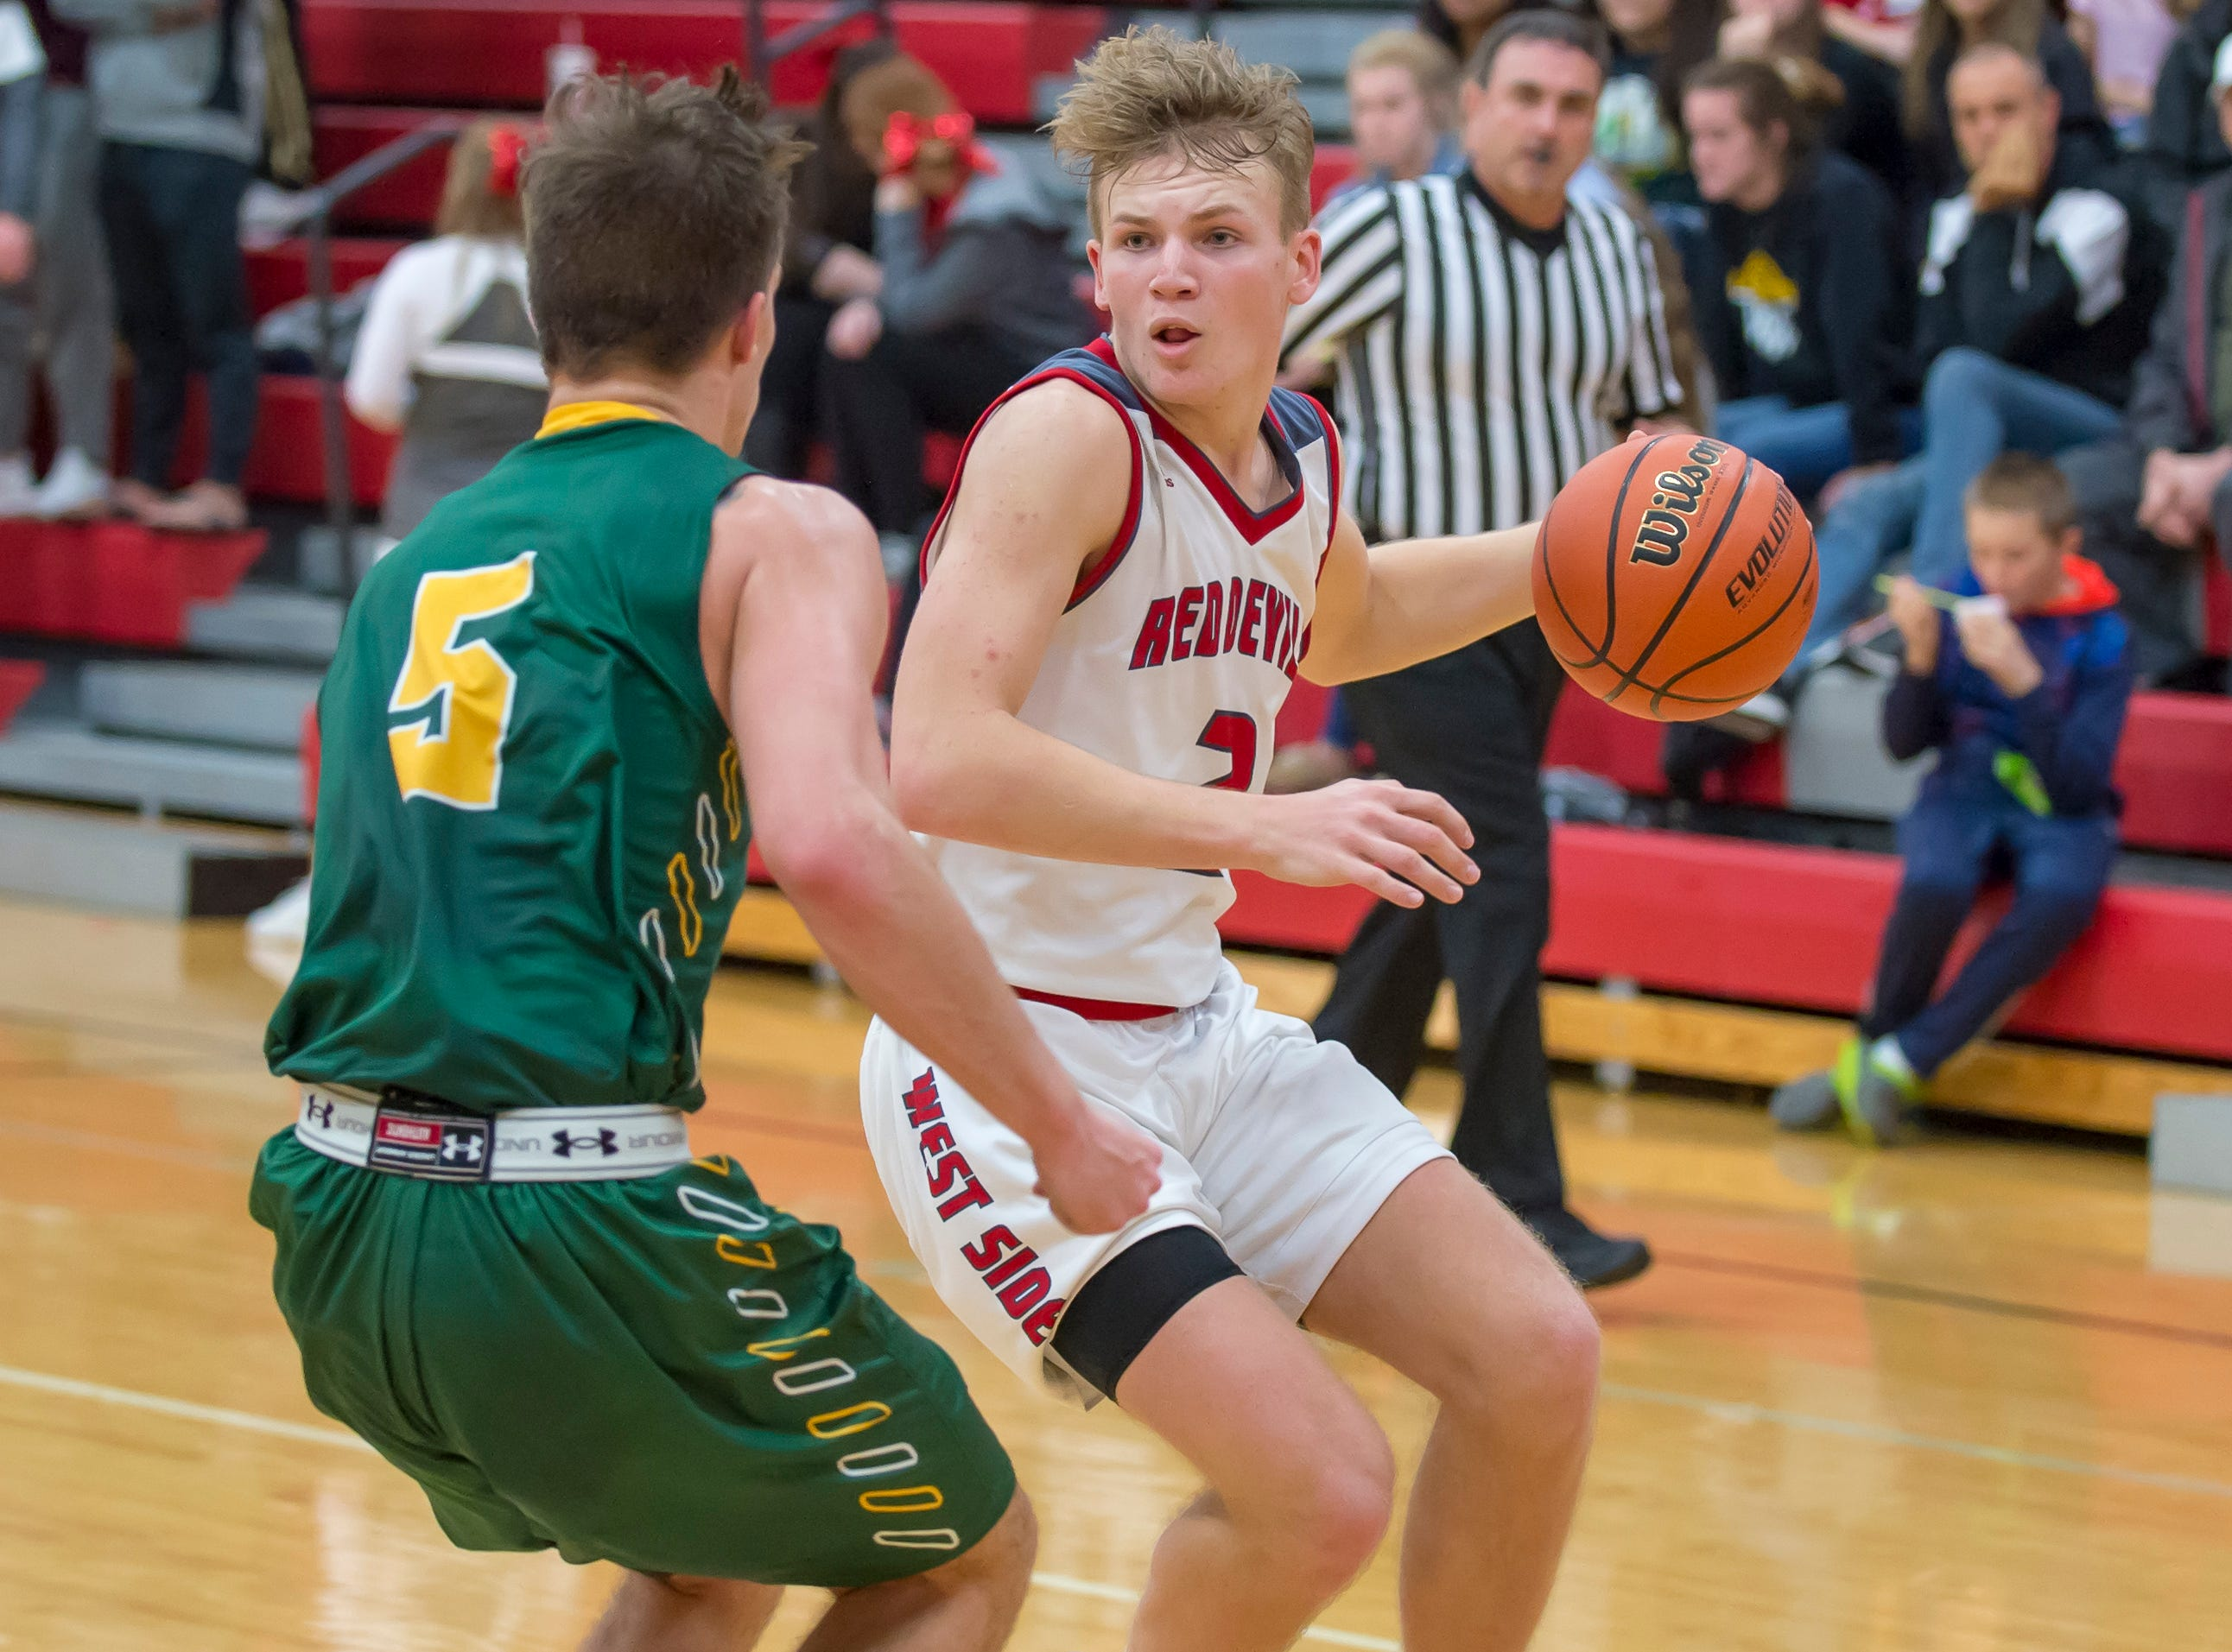 Action from the Benton Central at West Lafayette basketball game on December 14, 2018 - Tyler Boyle